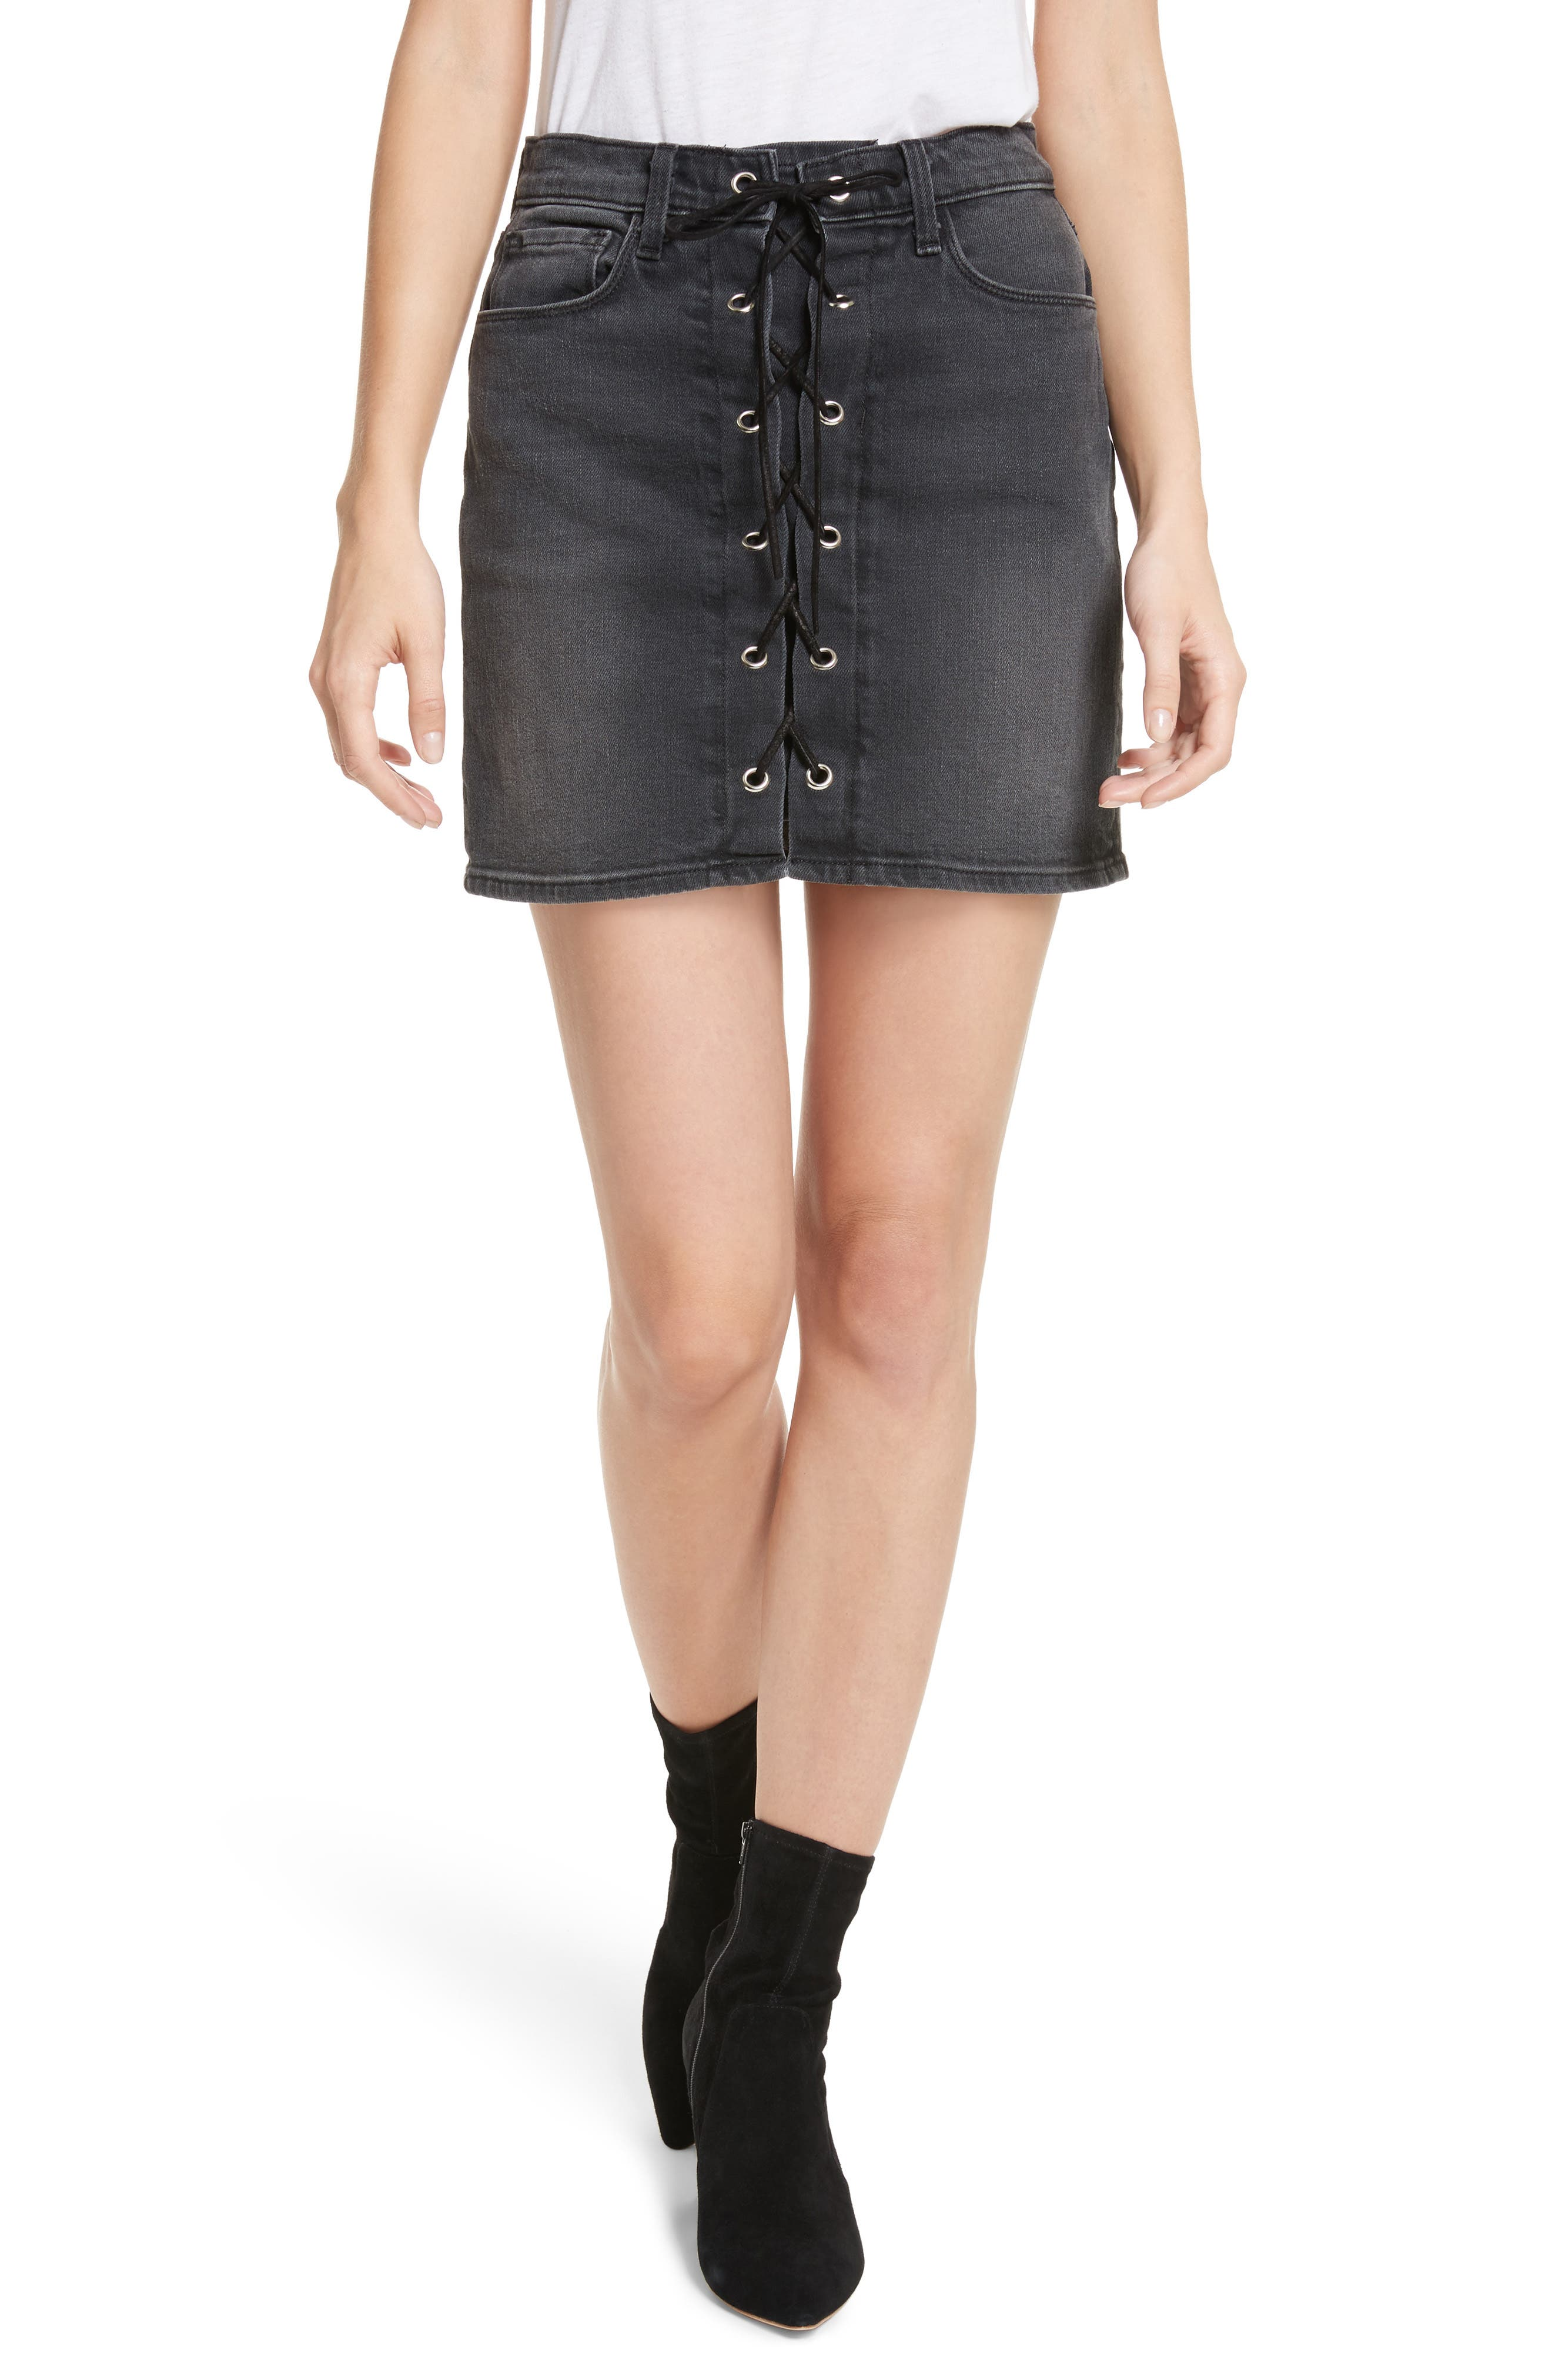 Alternate Image 1 Selected - L'AGENCE Portia Lace Up Denim Skirt